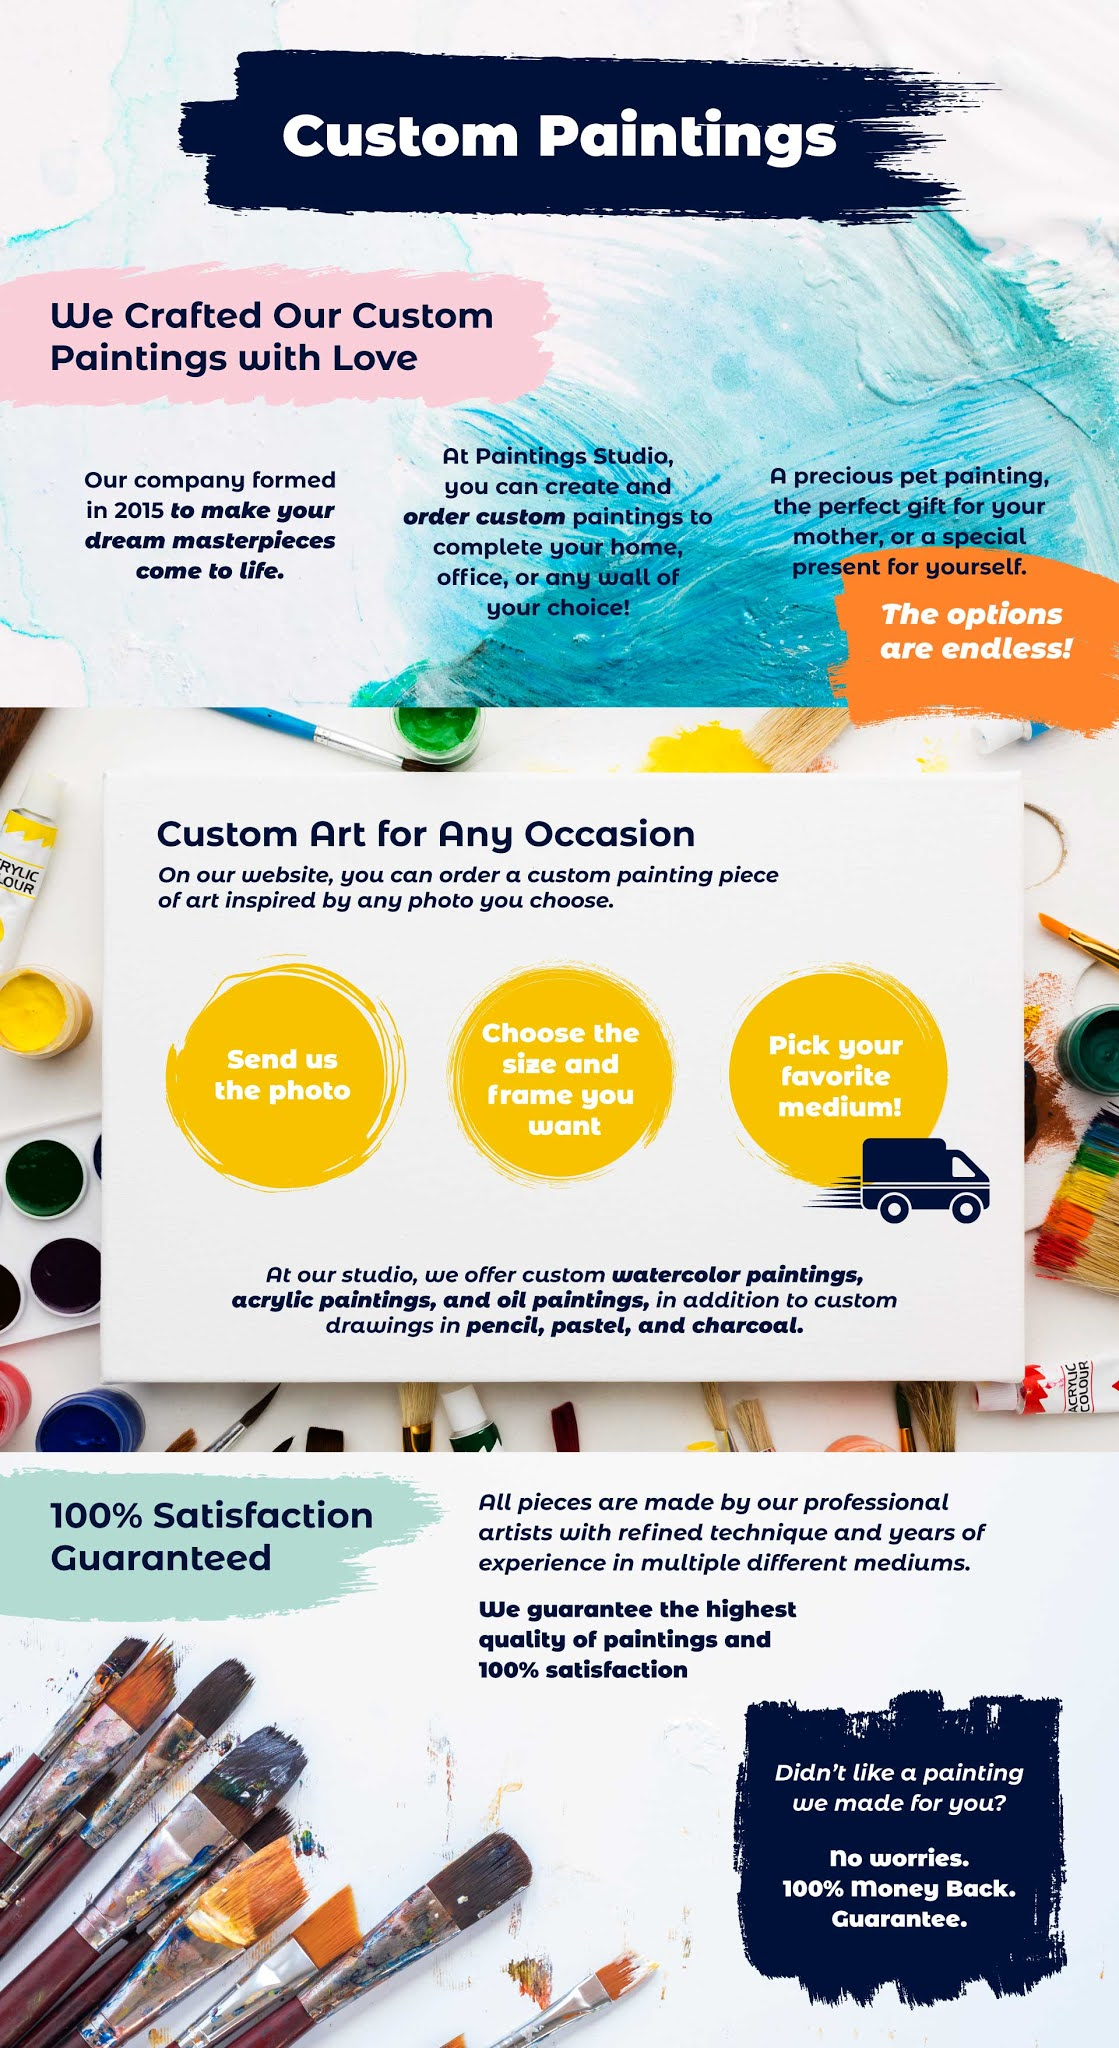 Paintings Studio - We Crafted Our Custom Paintings with Love #infographic #Arts #Paintings Studio #Custom Paintings #infographics